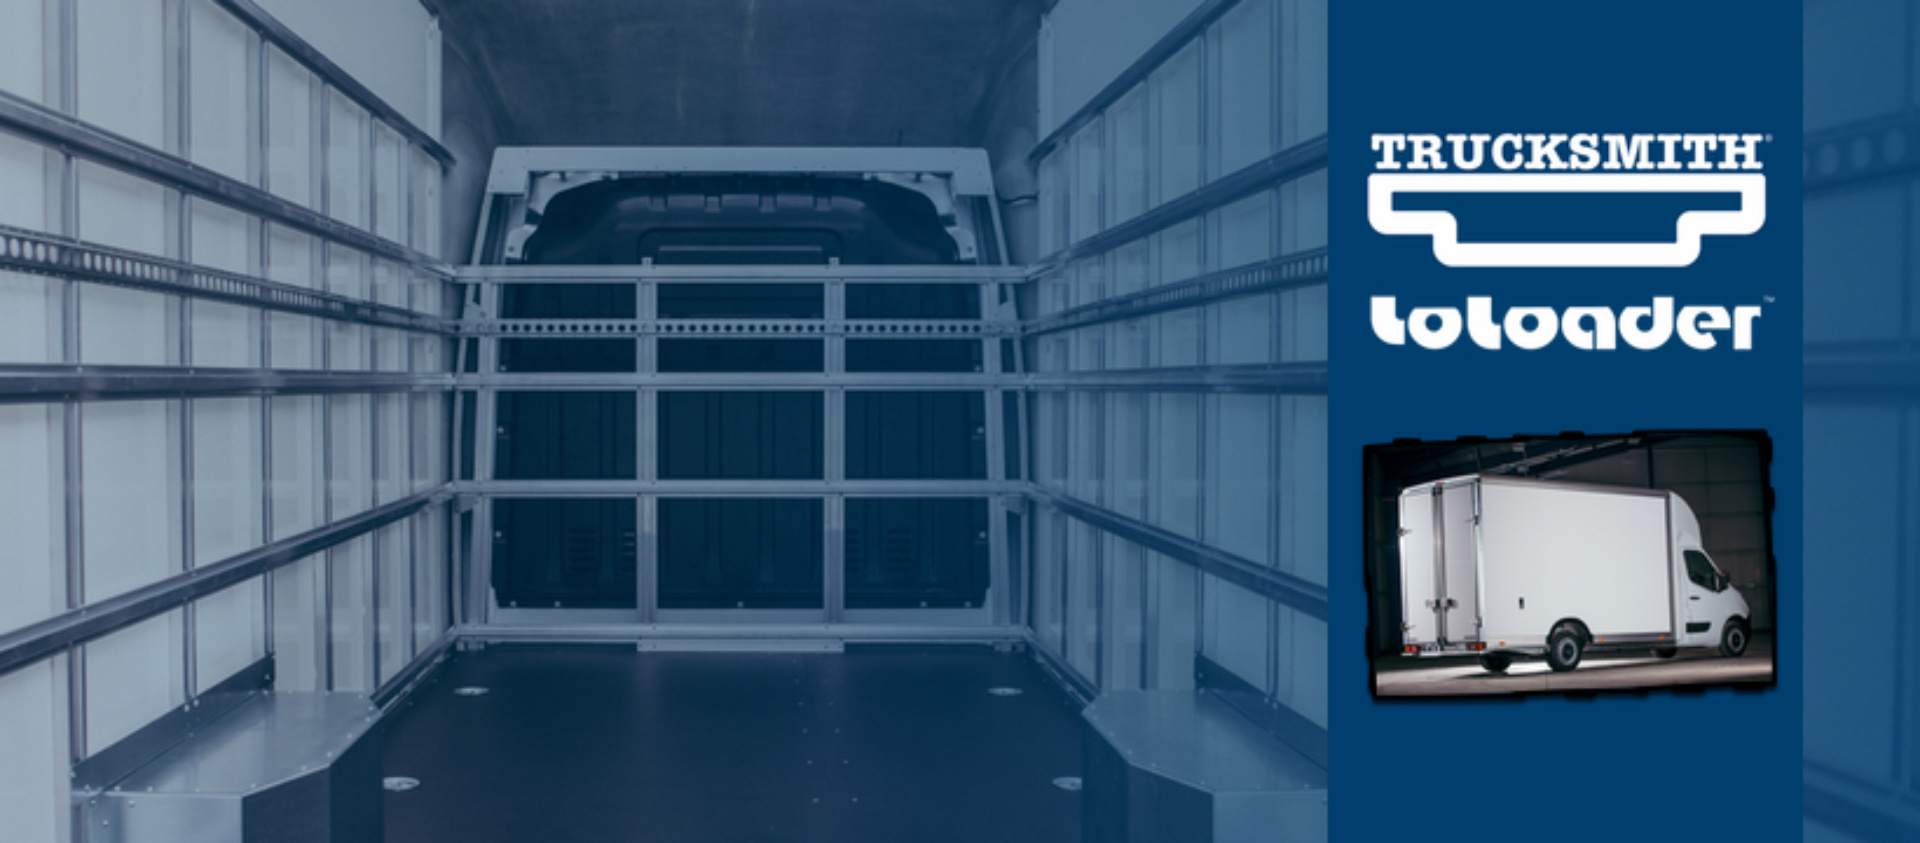 Trucksmith facebook cover